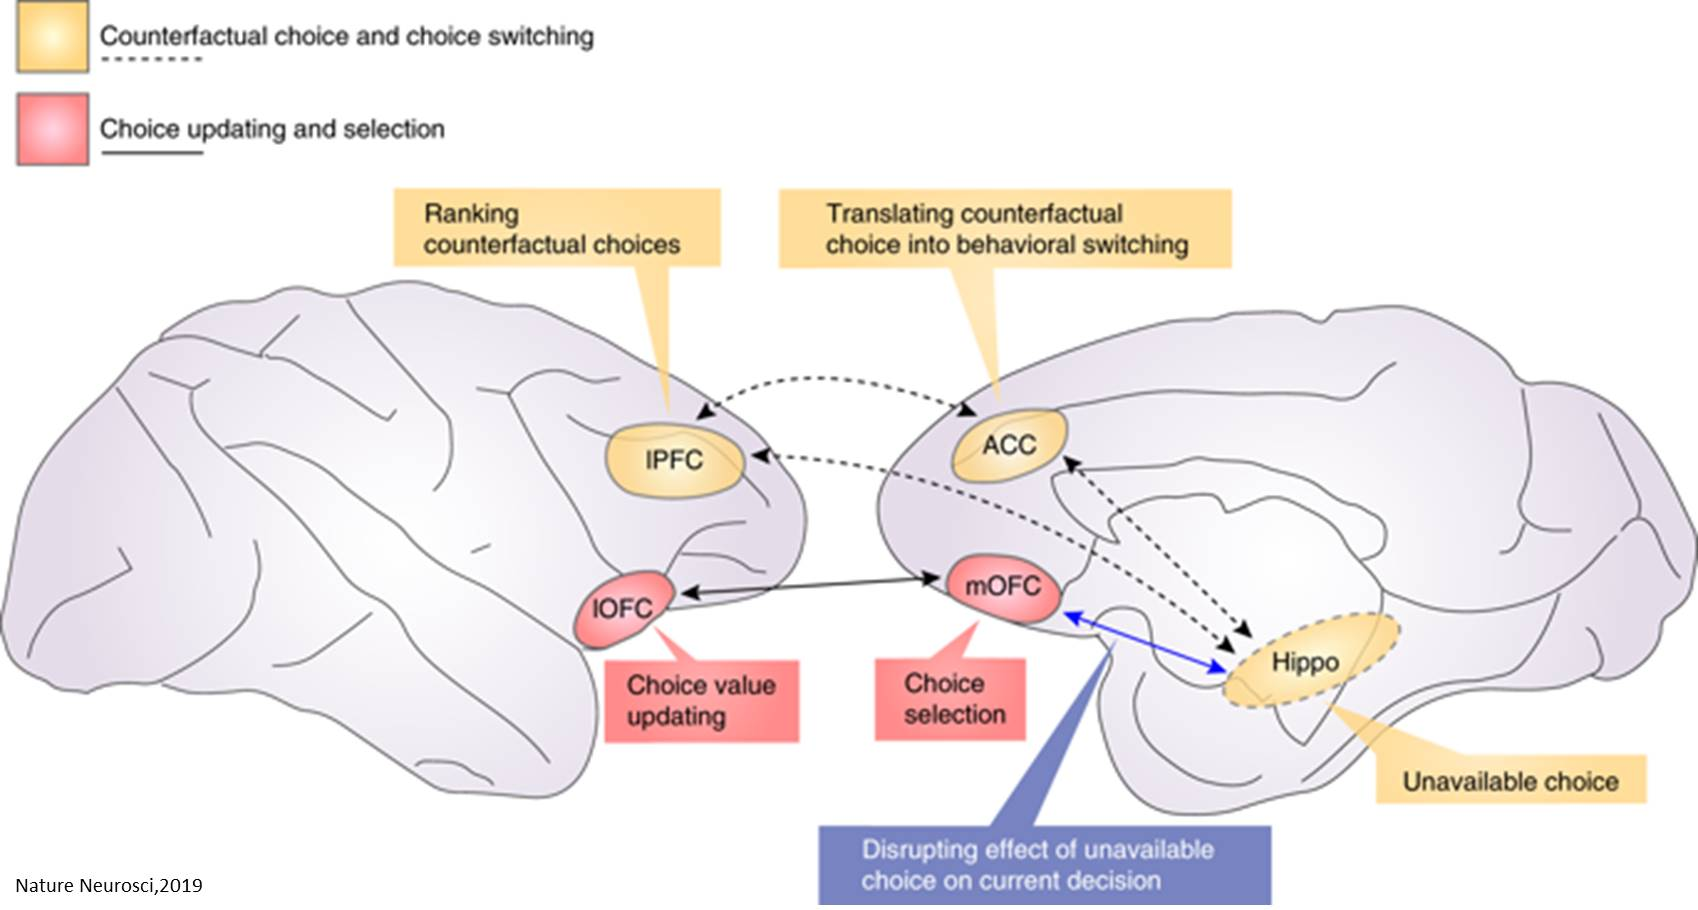 Changing decision-making process in the brain using low-intensity ultrasound